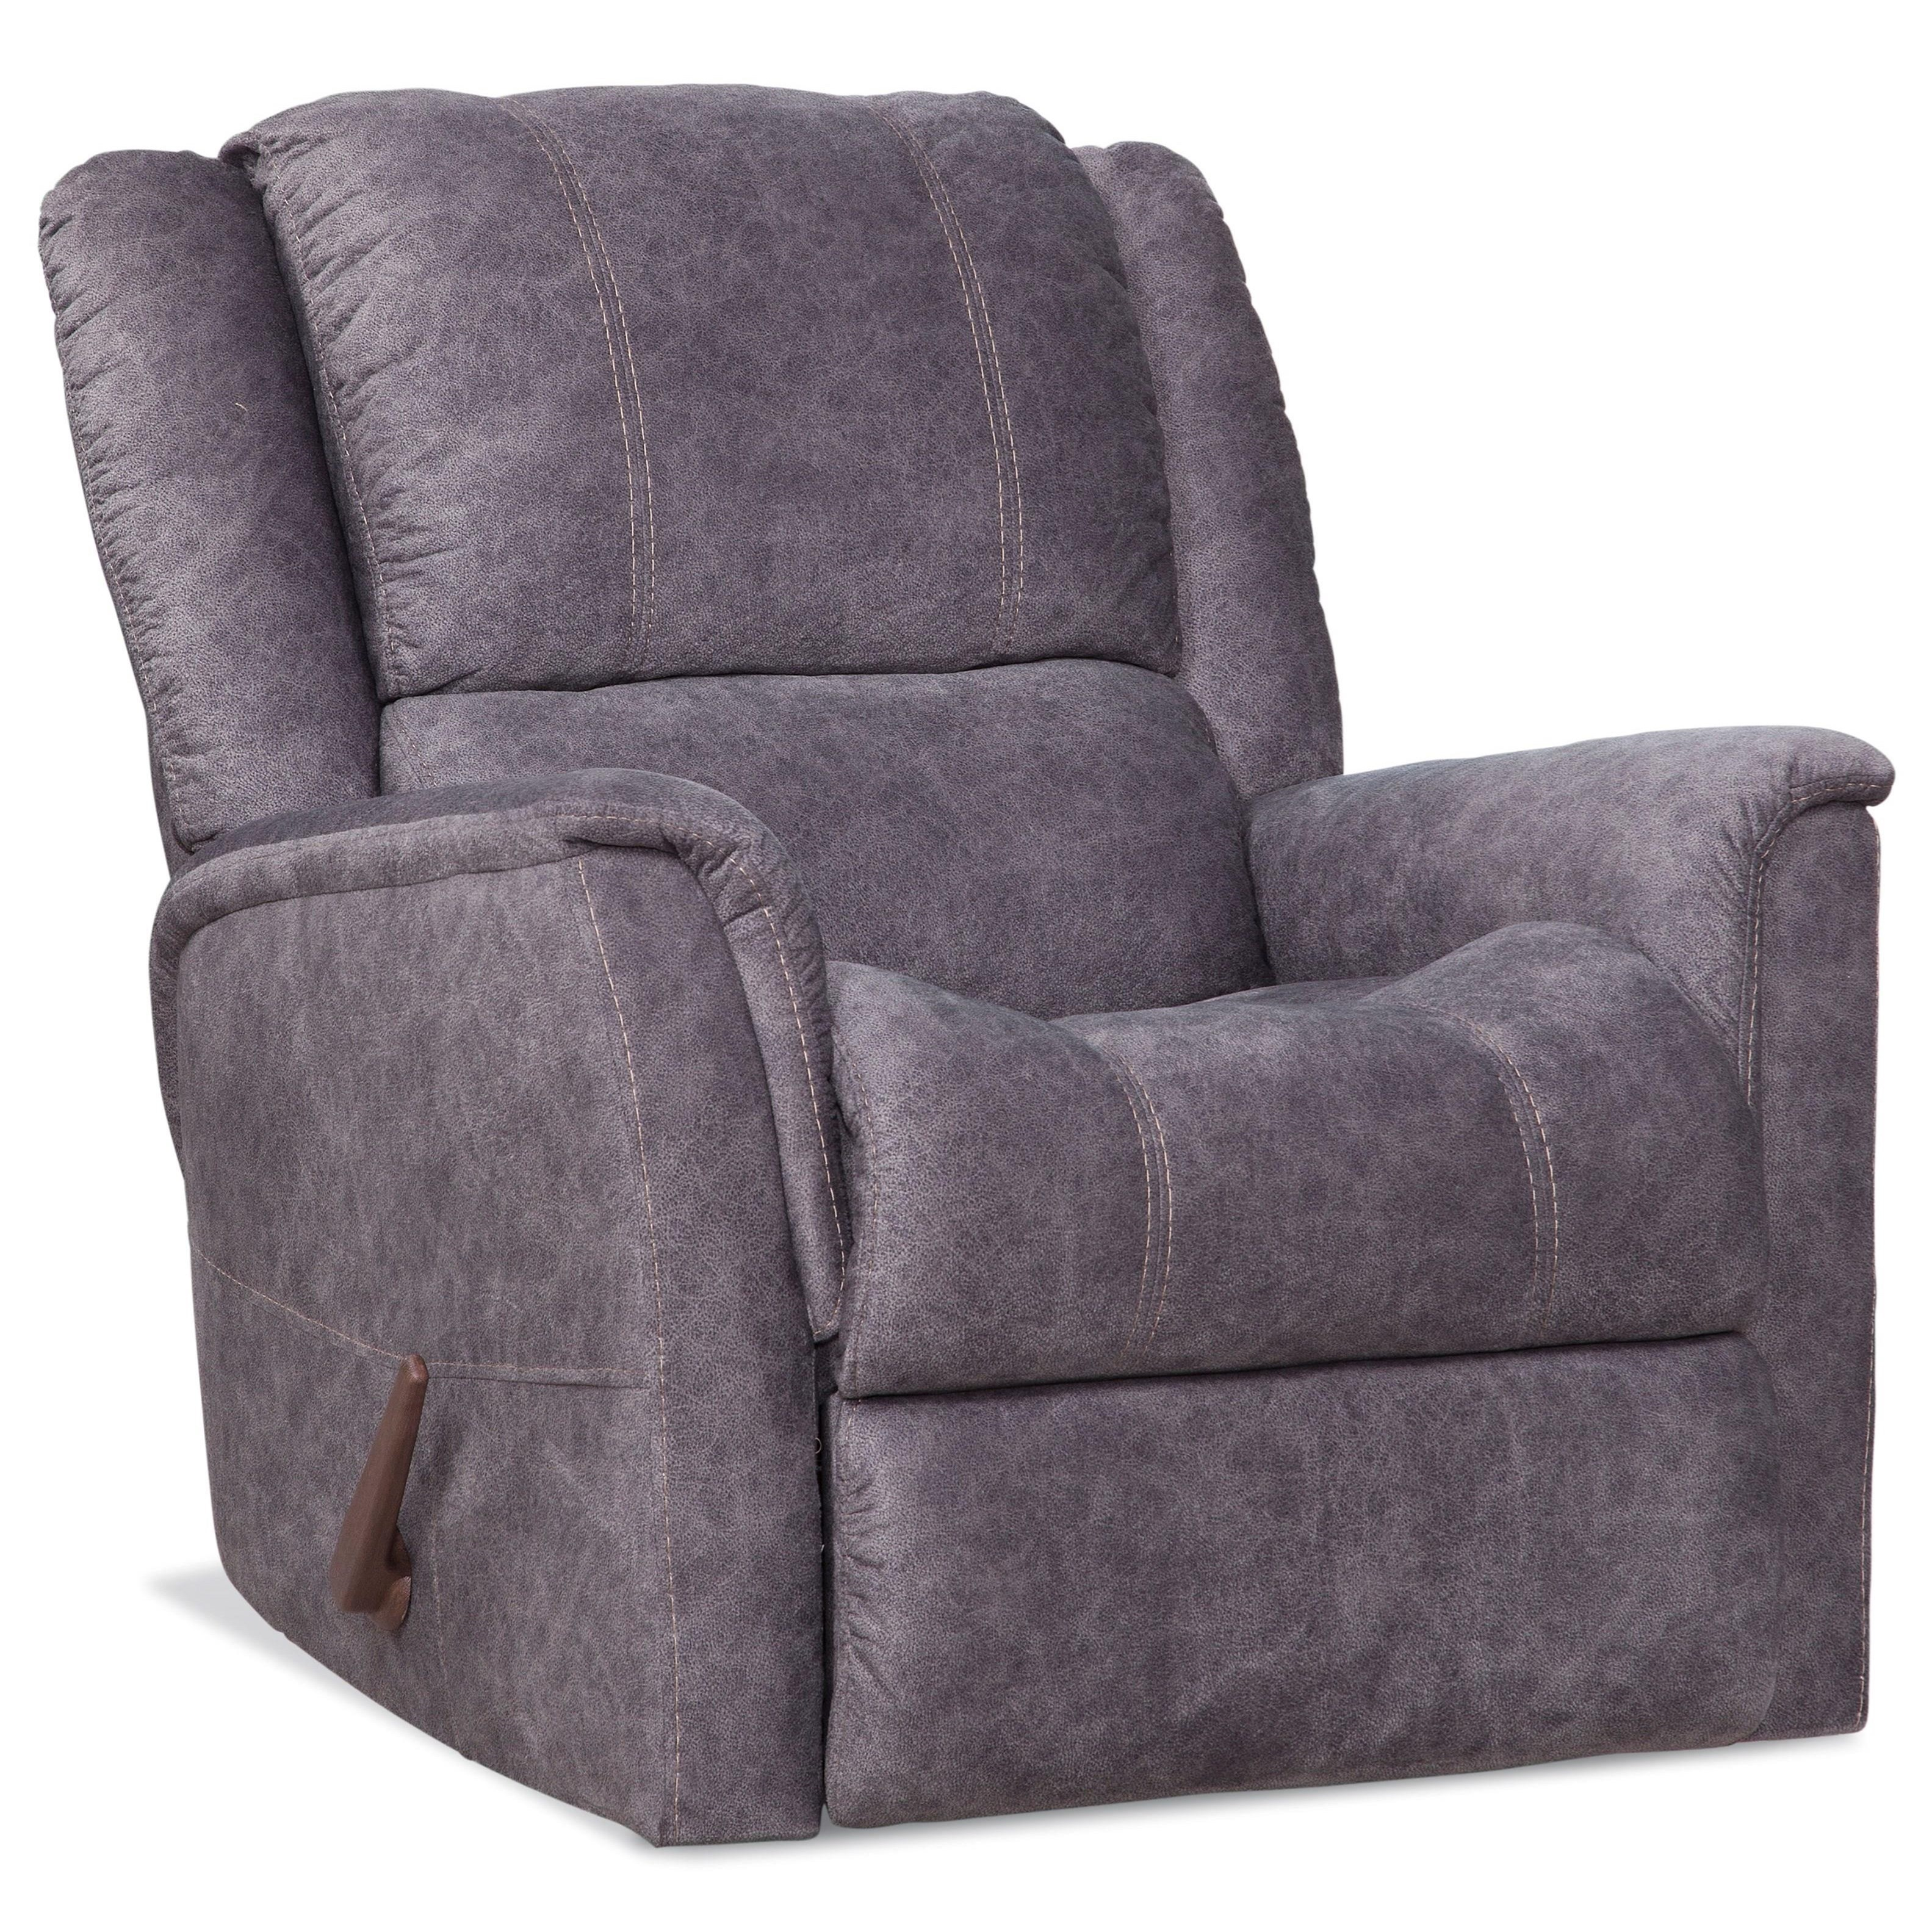 172 Casual Rocker Recliner by HomeStretch at Darvin Furniture